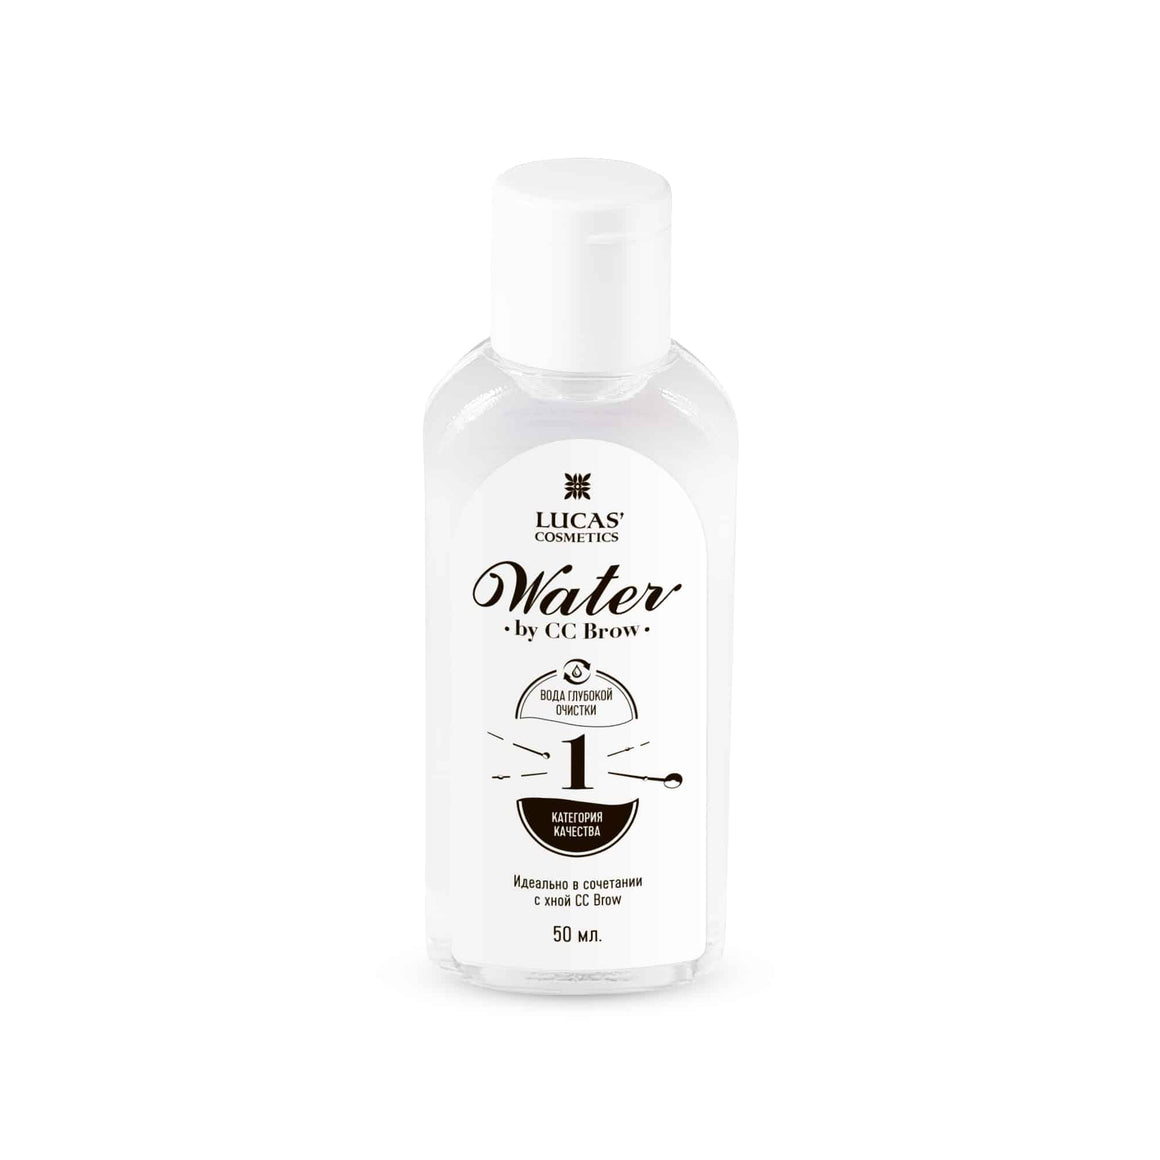 CC Brow Water (50ml.) - Beauty Shop Direct